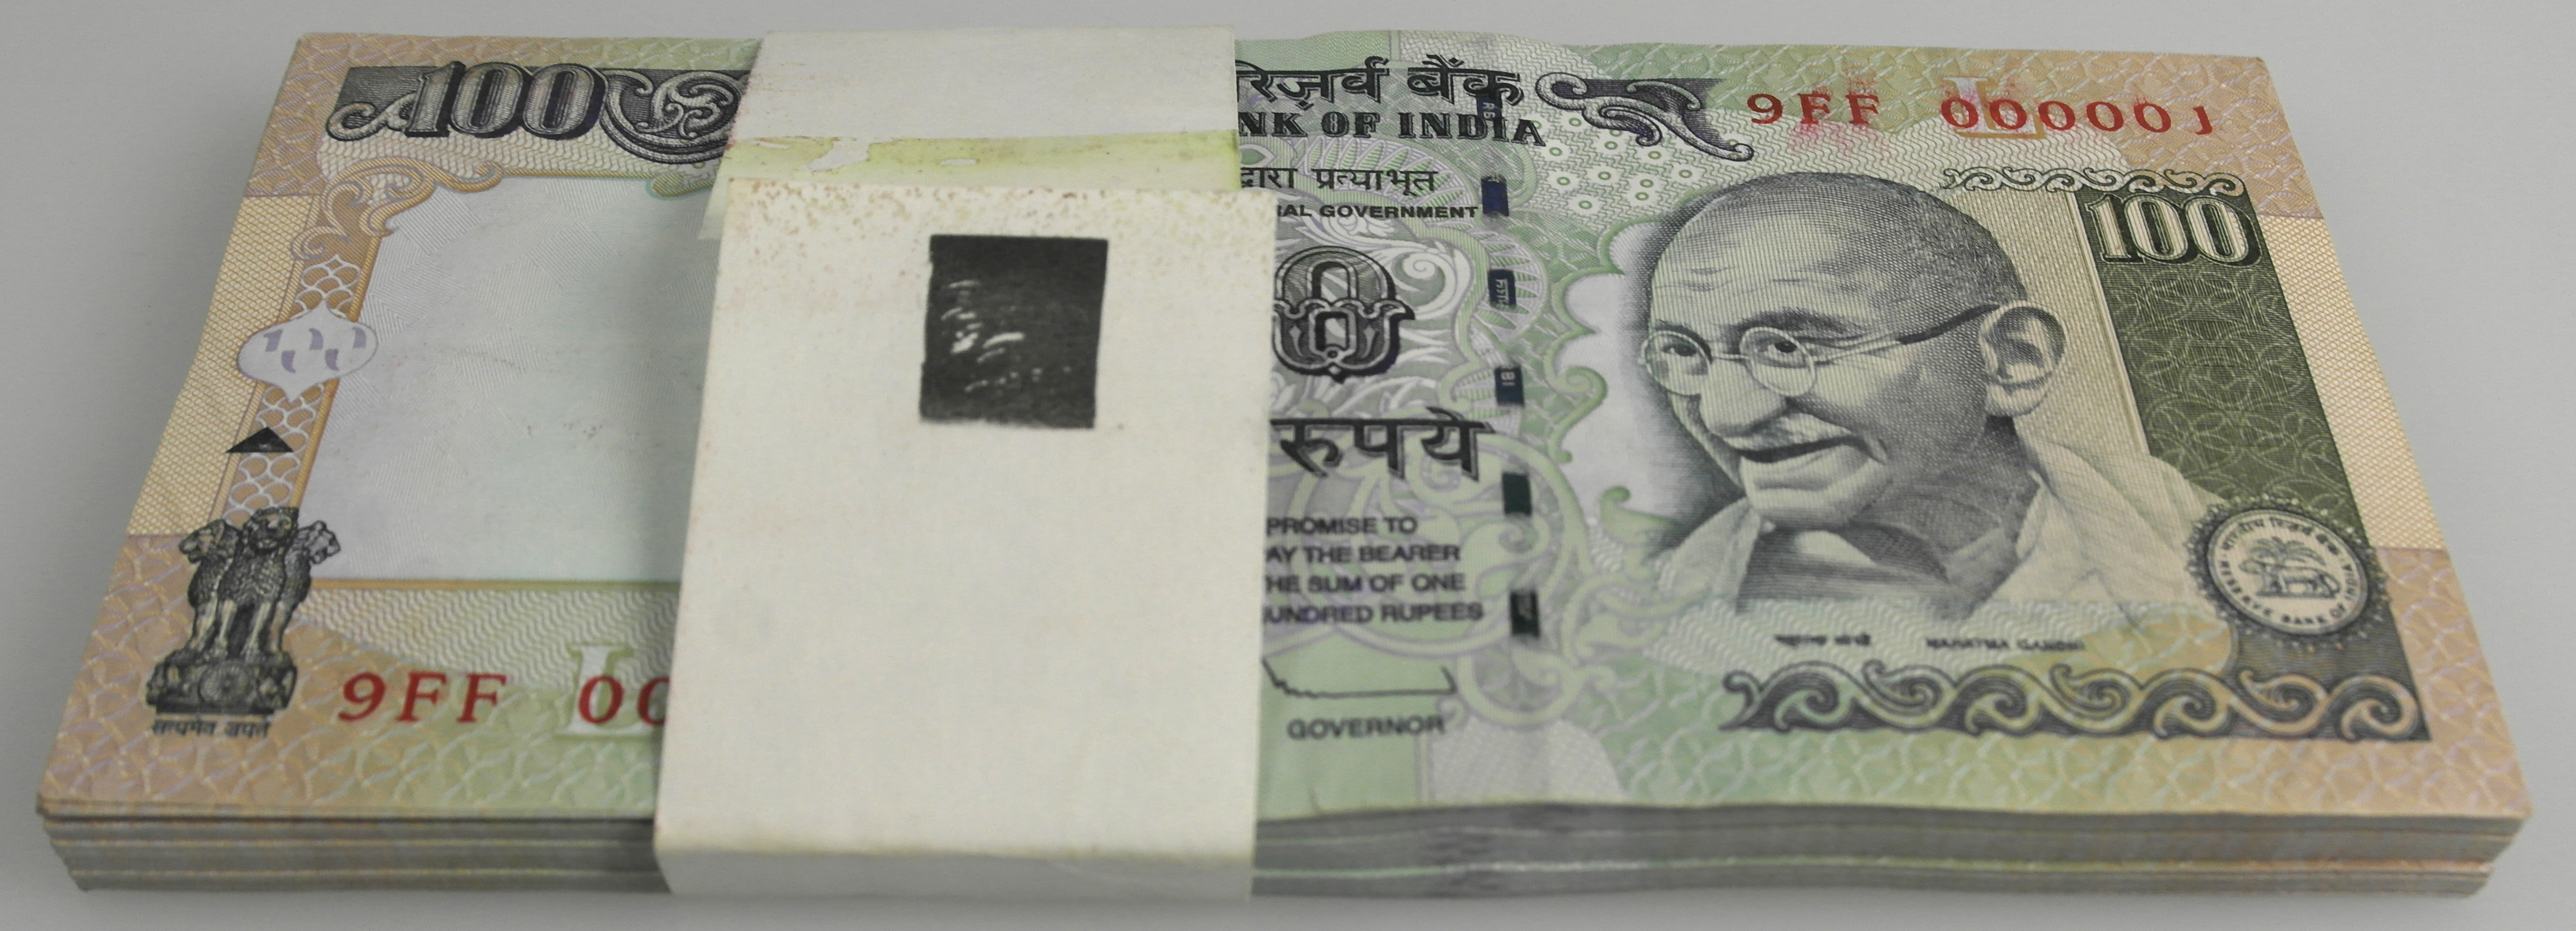 Stamp Auction - India / Indien | Banknoten - Banknotes